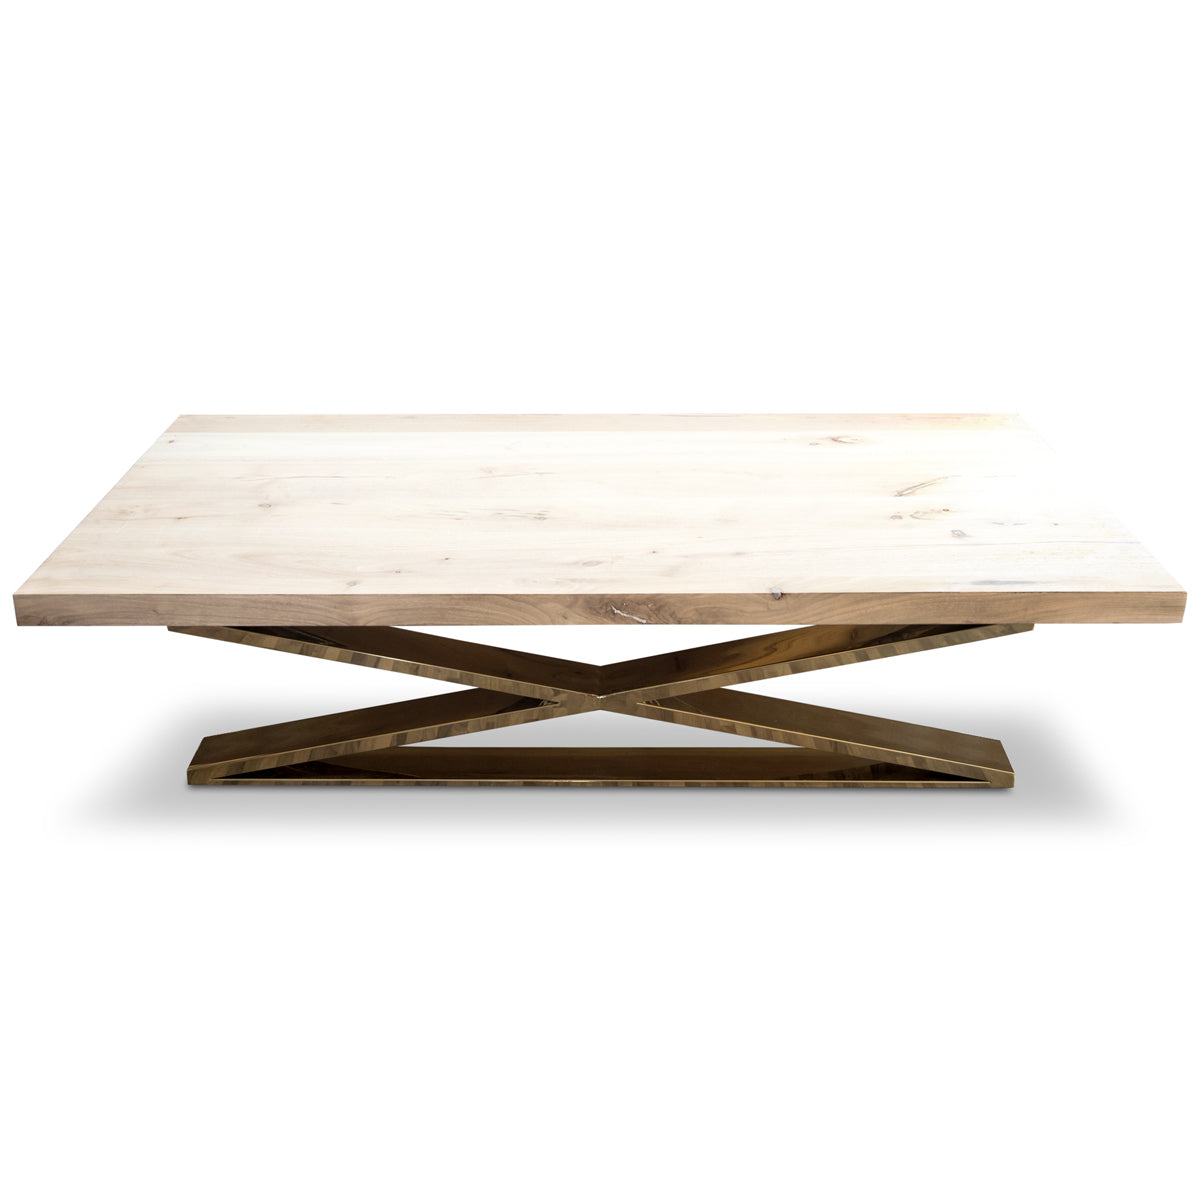 XLeg Coffee Table Modern Coffee Table With Wood Top ModShop - Coffee table no legs